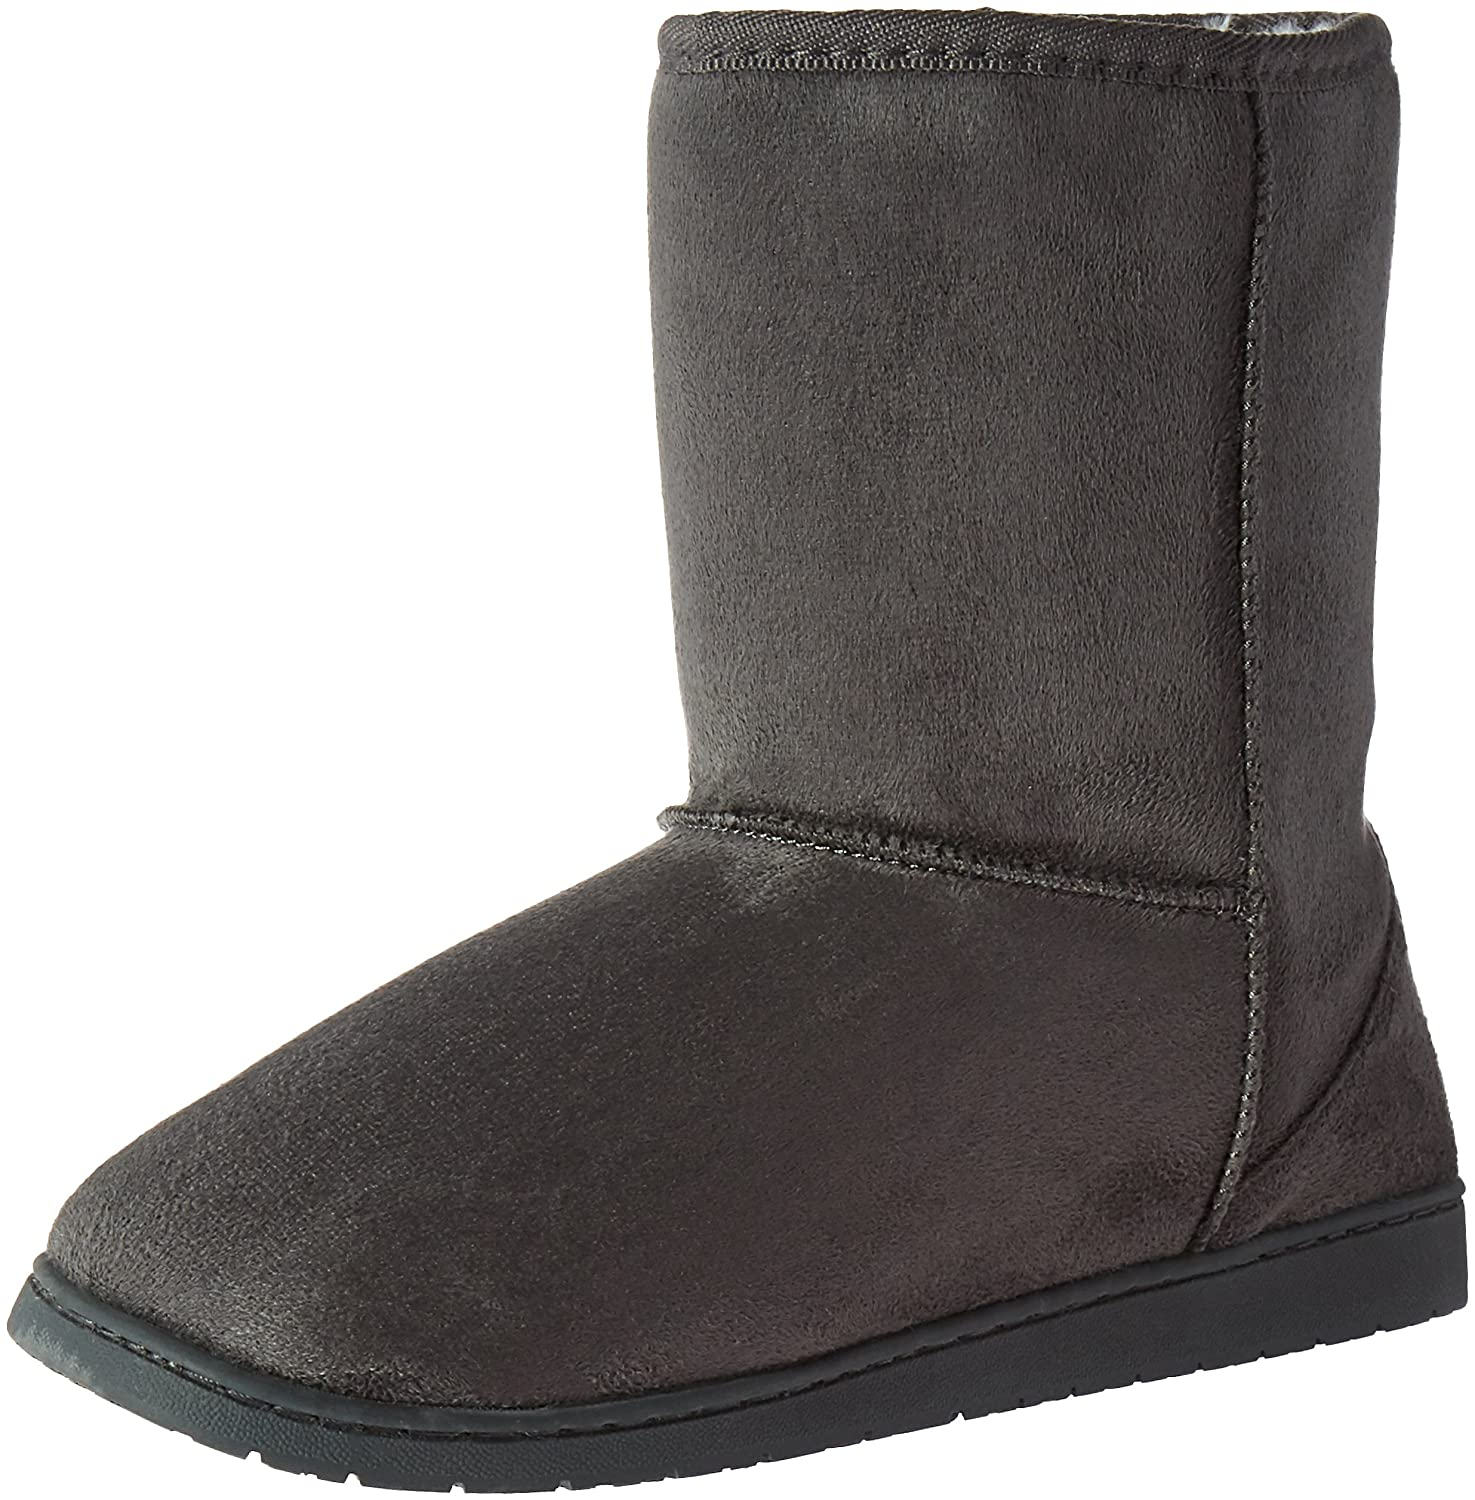 DAWGS Womens 9 Inch Faux Shearling Microfiber Vegan Winter Boots B009SQ196Q 5 B(M) US|Grey